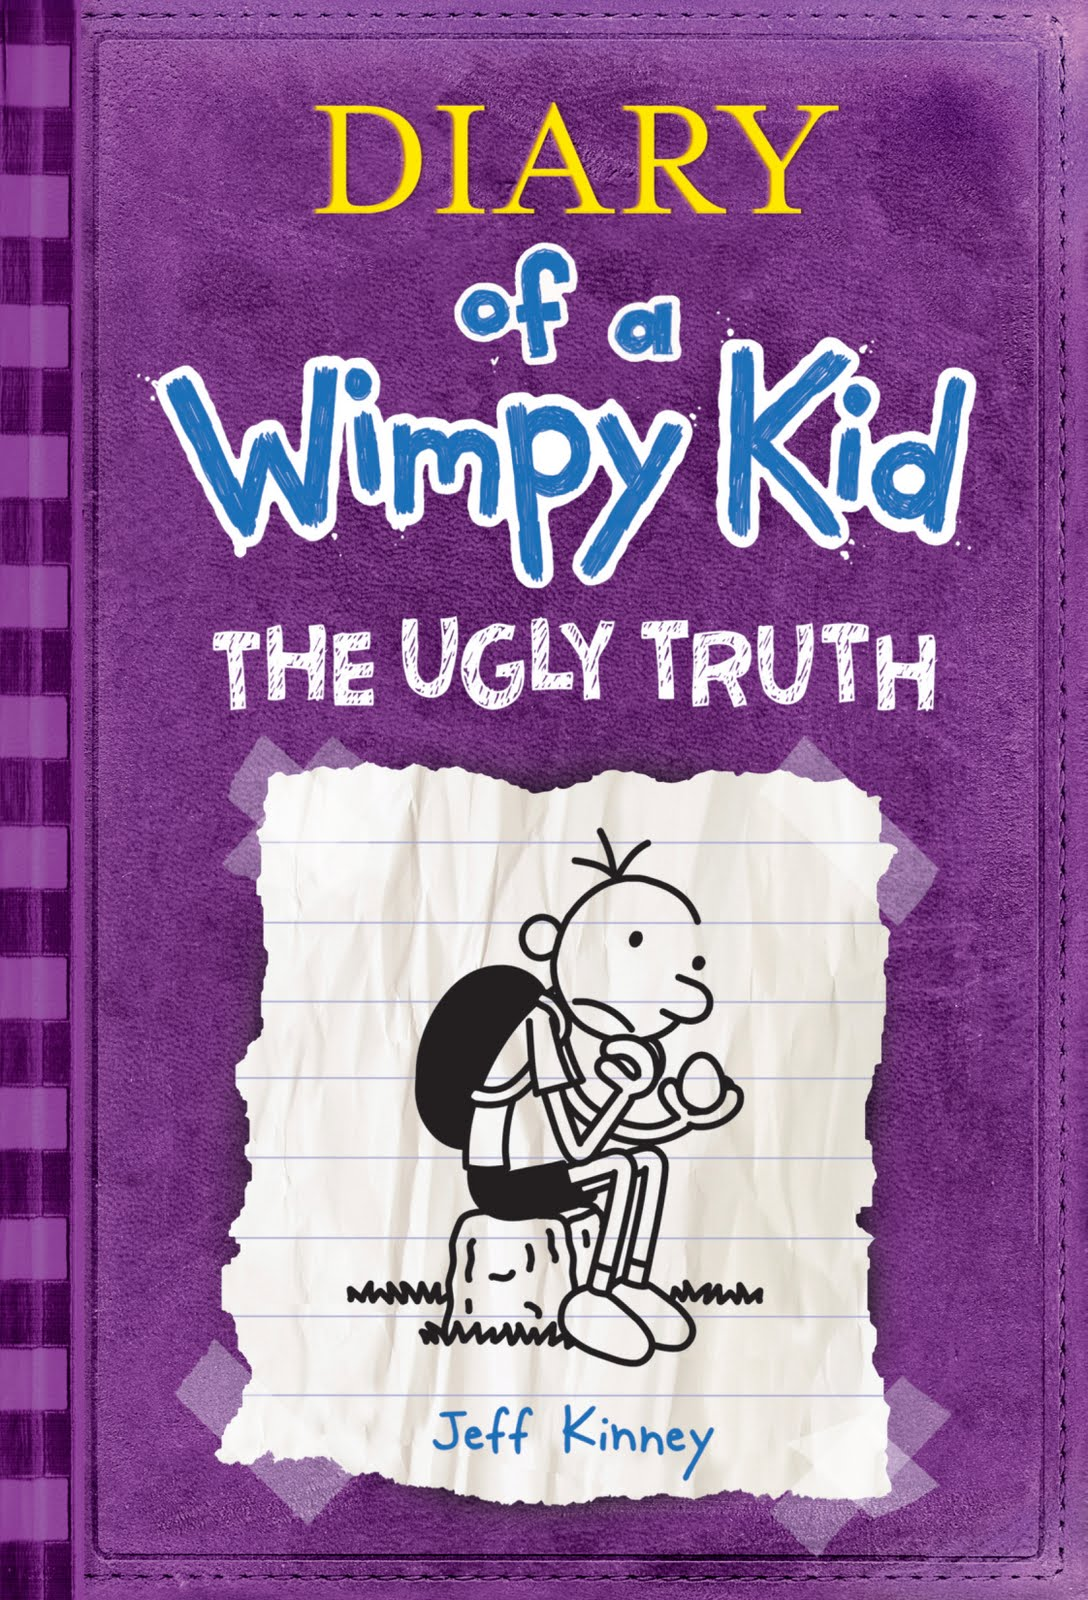 Mishaps and adventures diary of a wimpy kid the ugly truth 5 diary of a wimpy kid the ugly truth 5 press release solutioingenieria Image collections